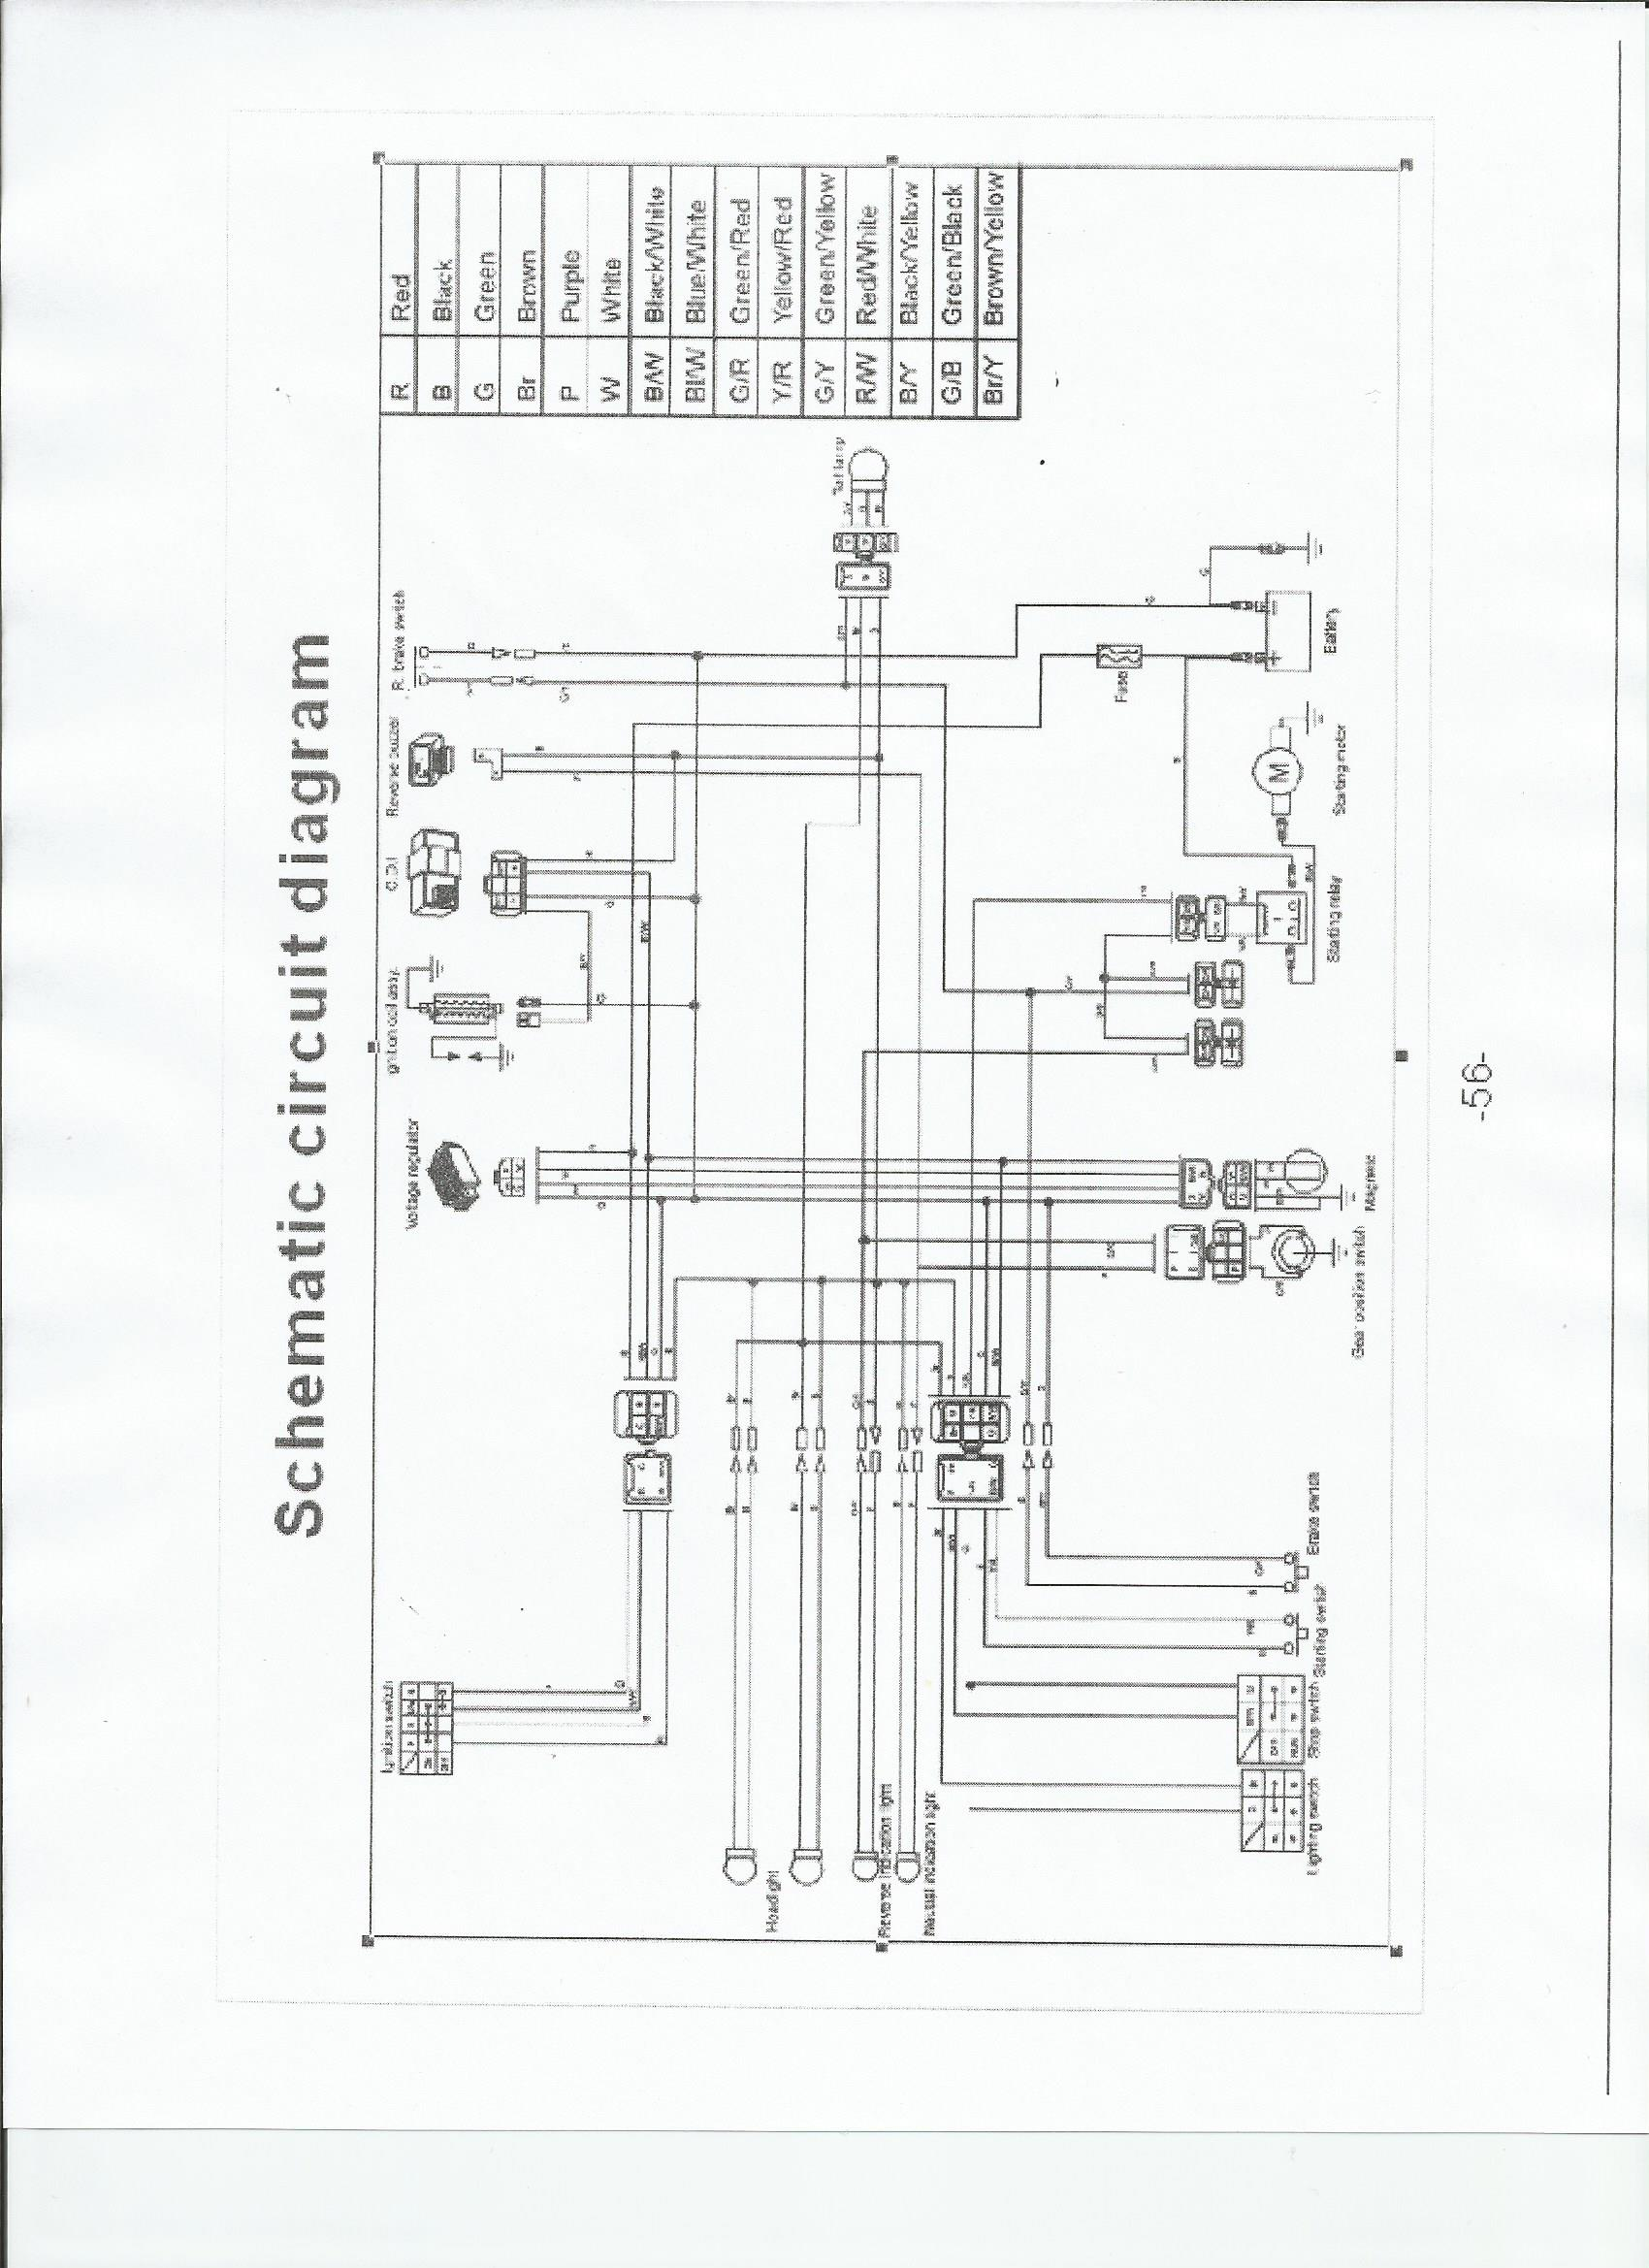 taotao mini and youth atv wiring schematic familygokarts support 150cc wiring diagram panther 70 atv wiring diagram [ 1700 x 2338 Pixel ]